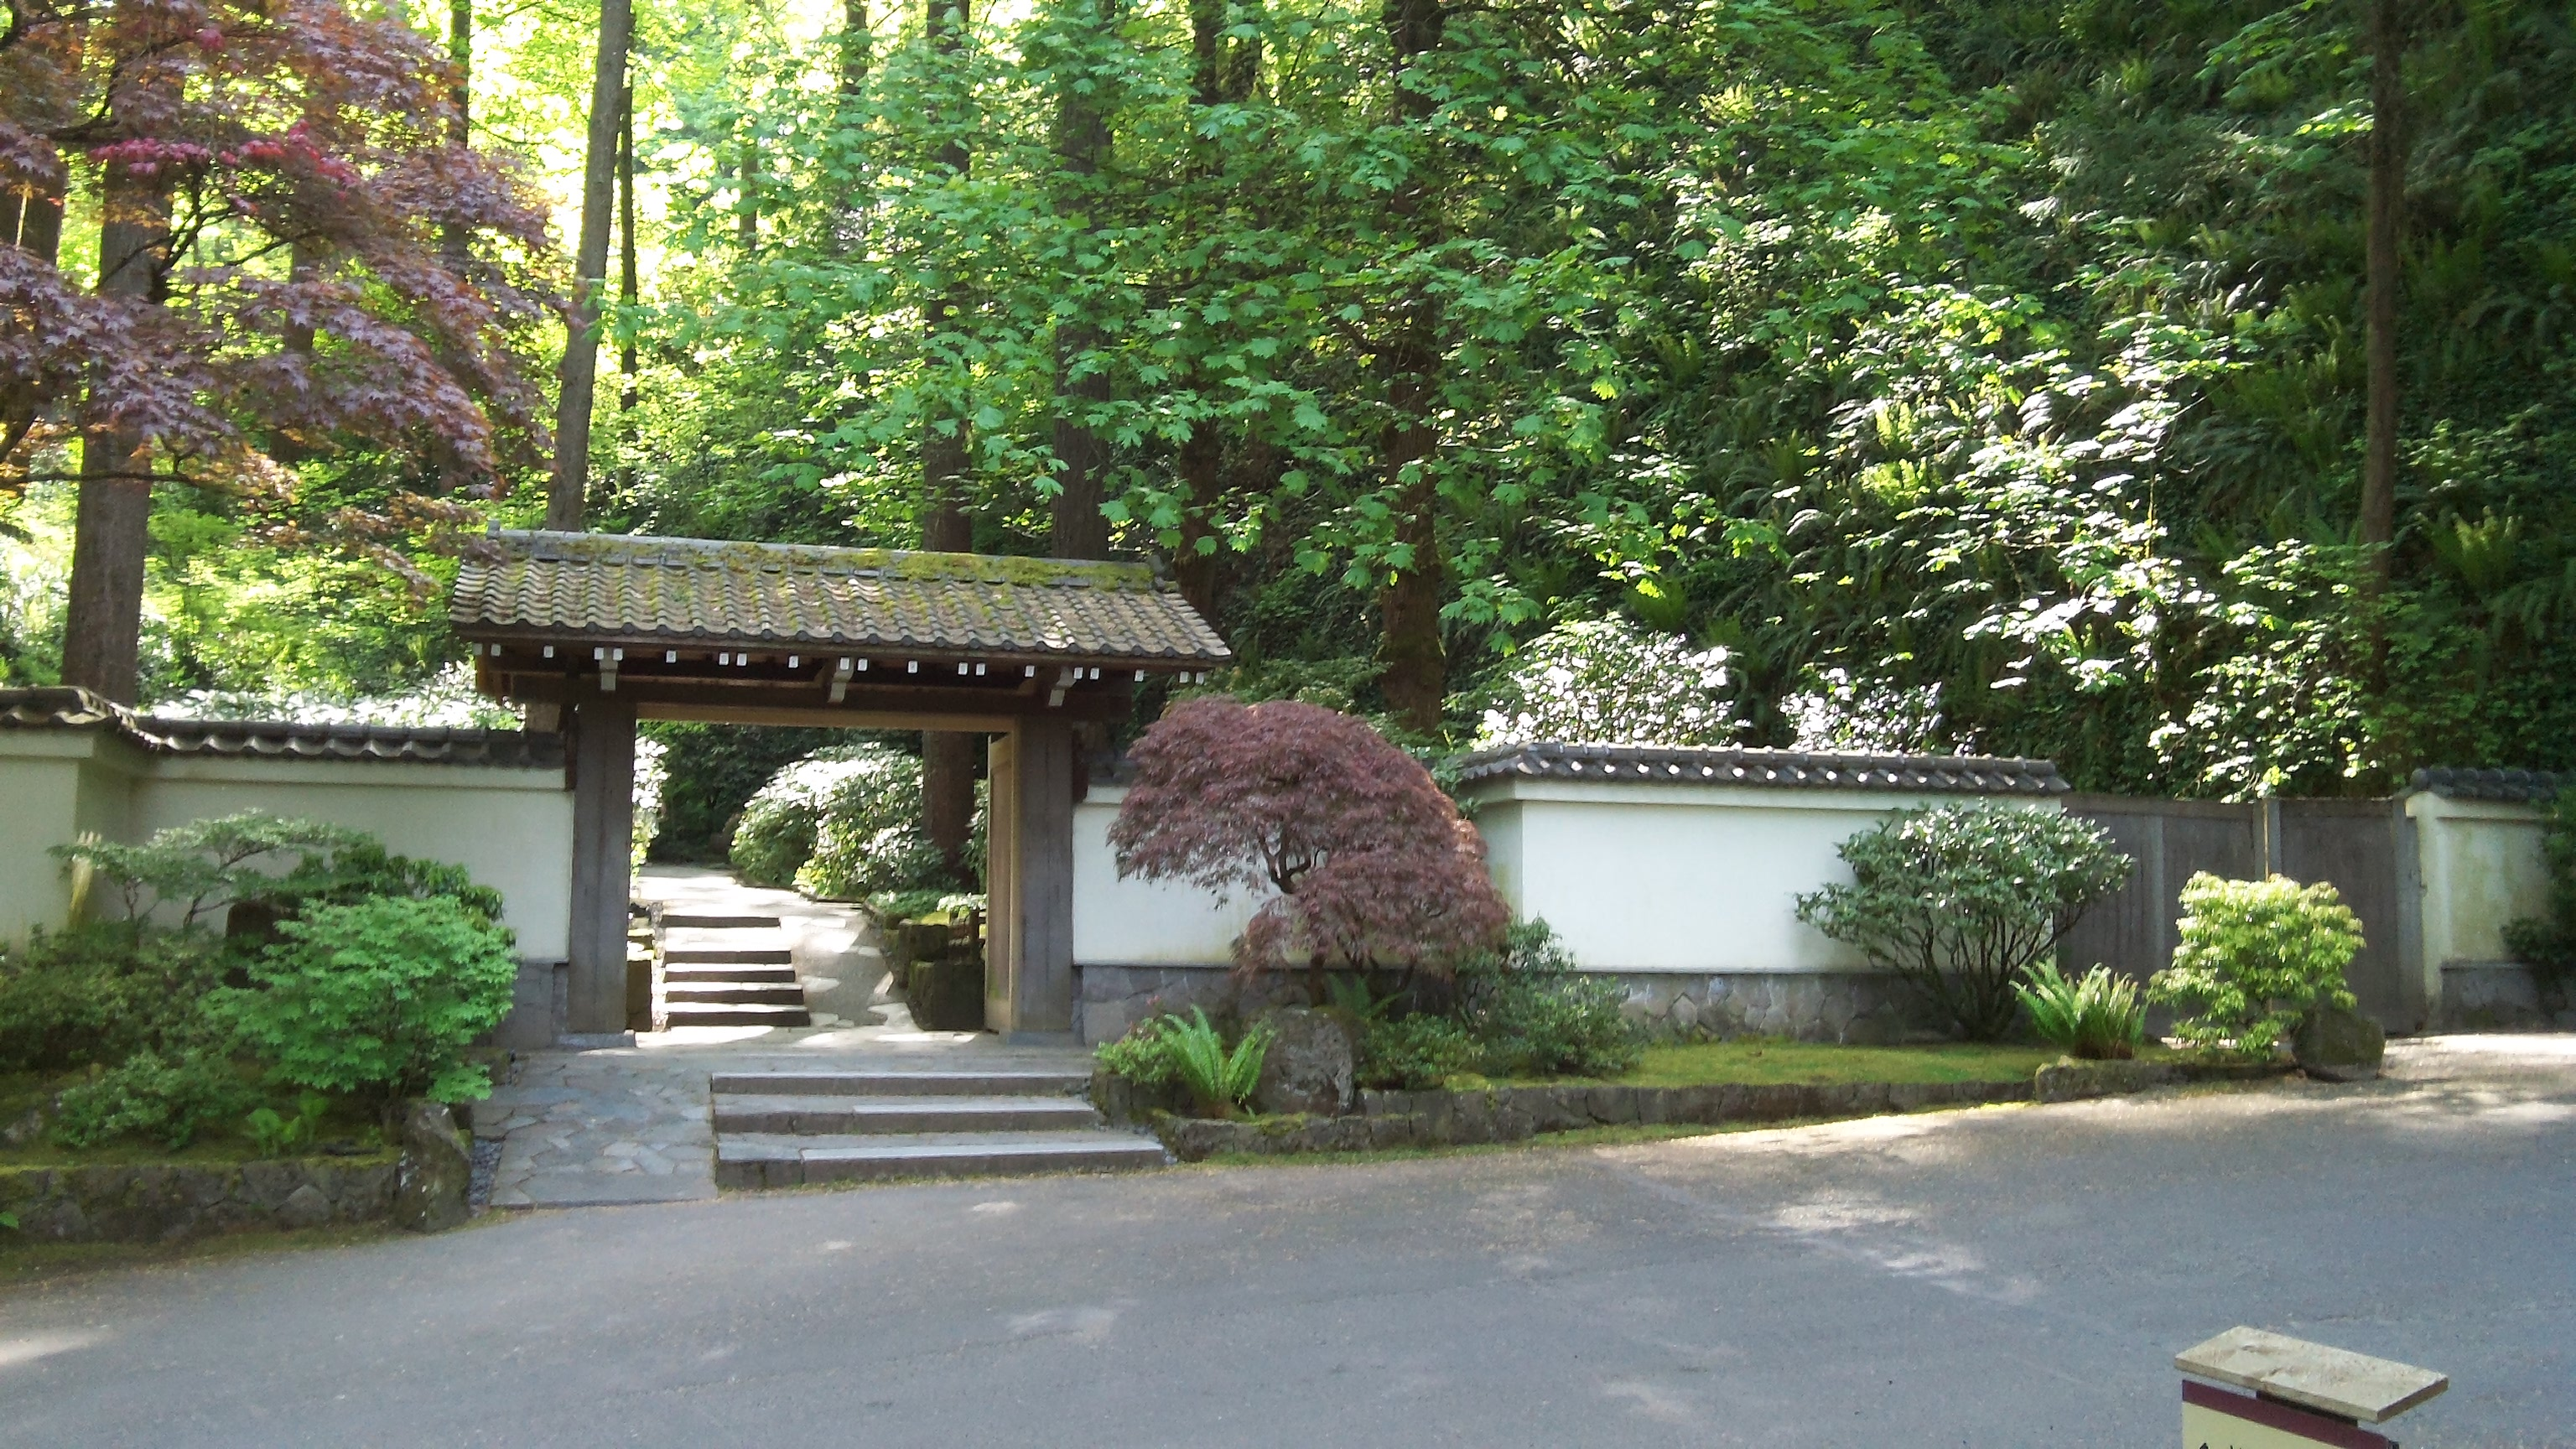 Southwest Portland Park - The Portland Japanese Garden (main entrance) at Washington Park